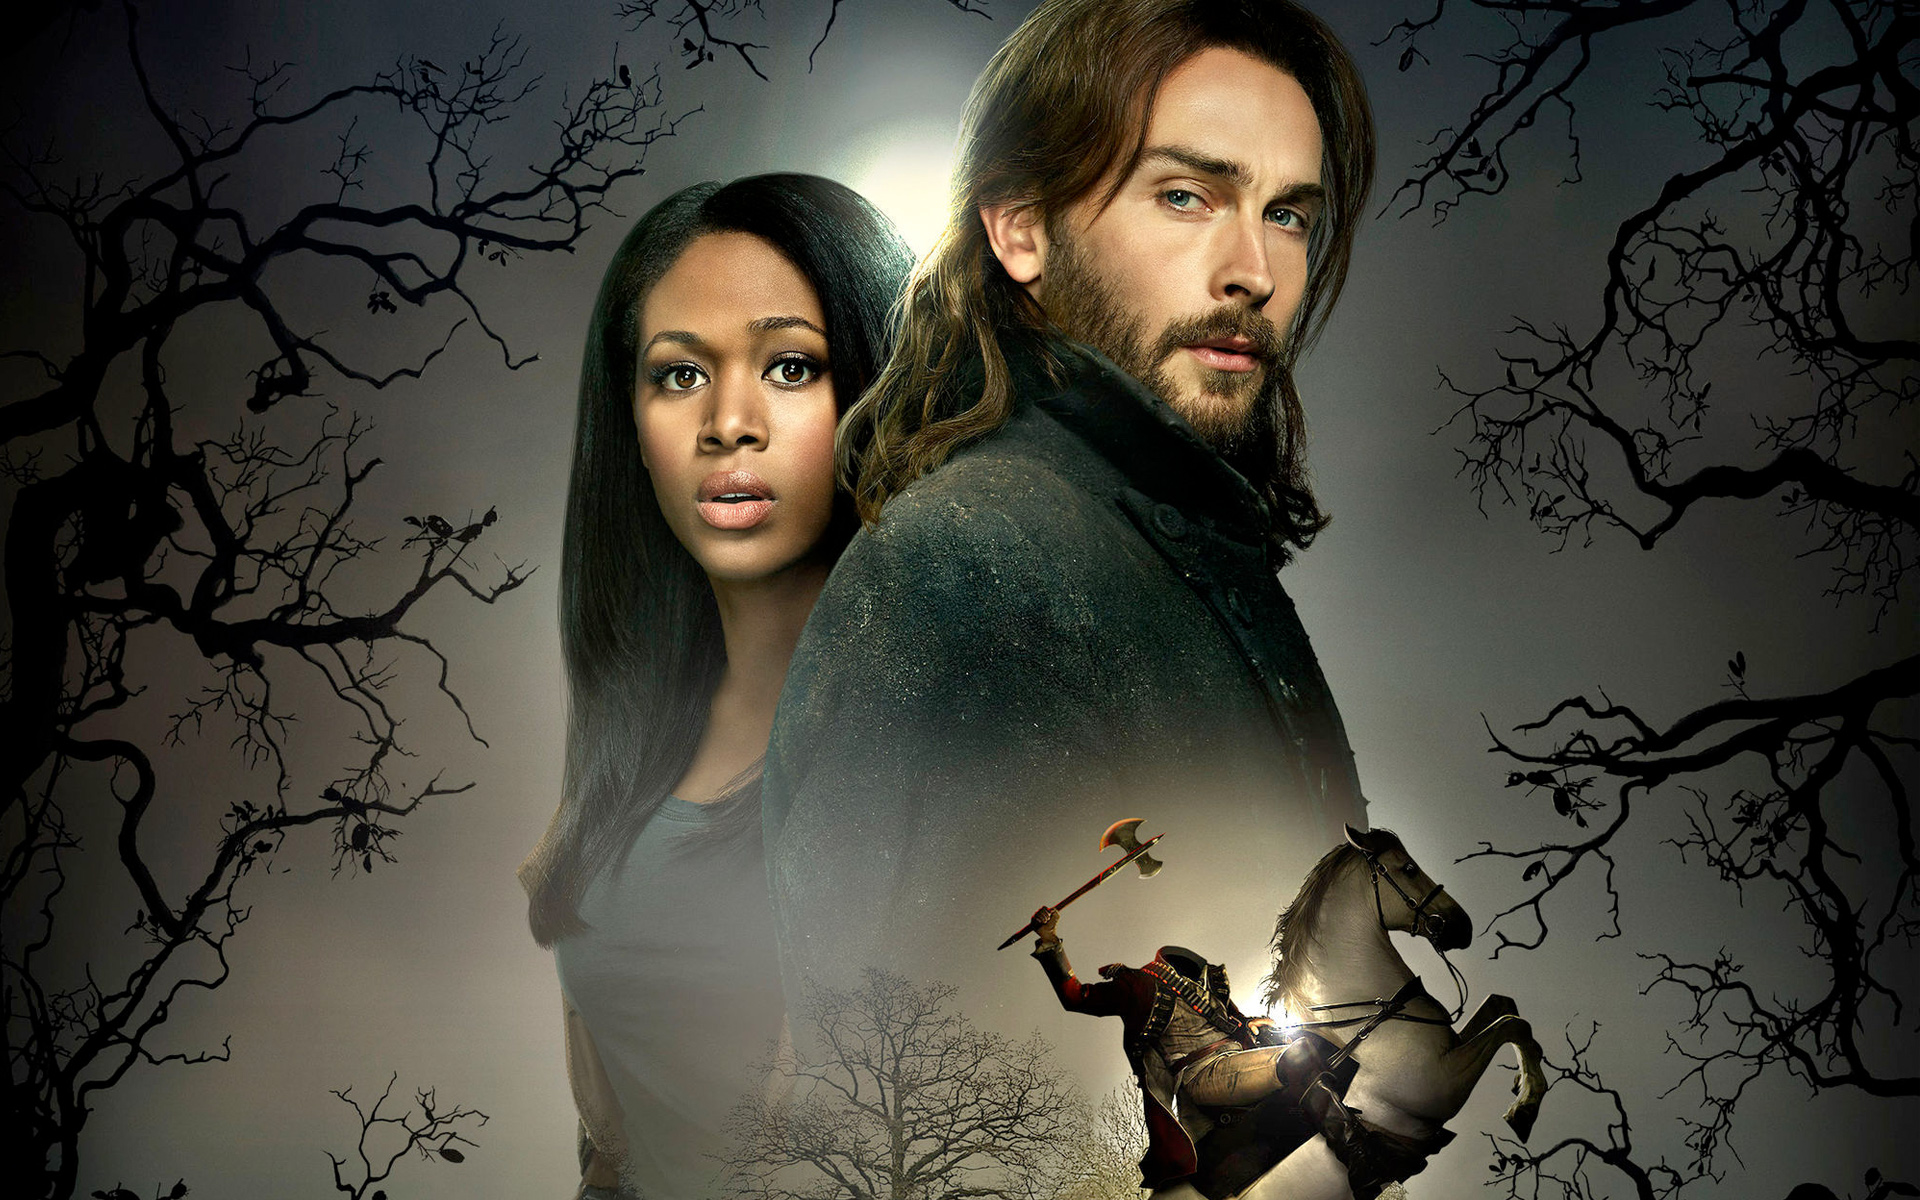 PHOTO CREDIT:  Above still is from the Sleepy Hollow's official via  Google .